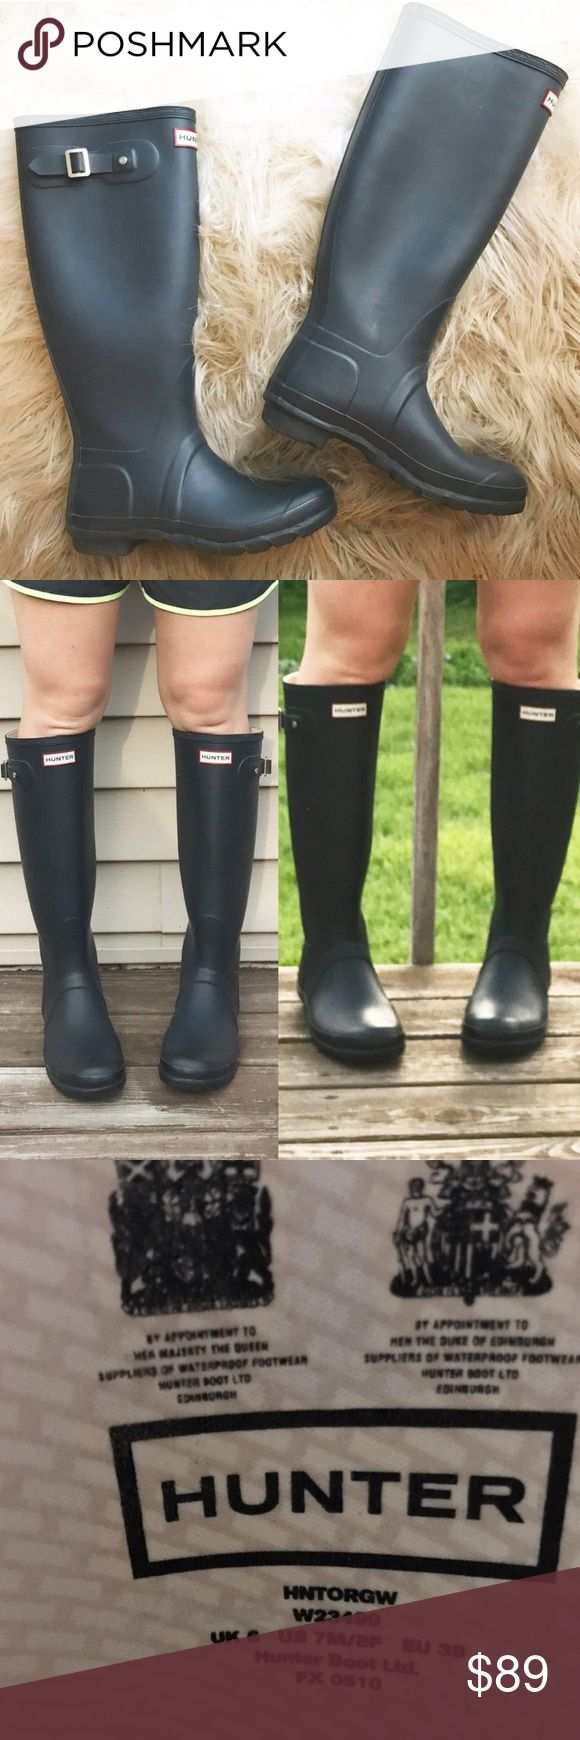 Tall Navy Matte Hunter Boots Wellies Perfect for all occasion navy Hunter rain boots! I bought two pair so I don't need this pair anymore. Excellent condition--some minor rusting on left buckle. Perfect for the rain on a summer day and a great transition